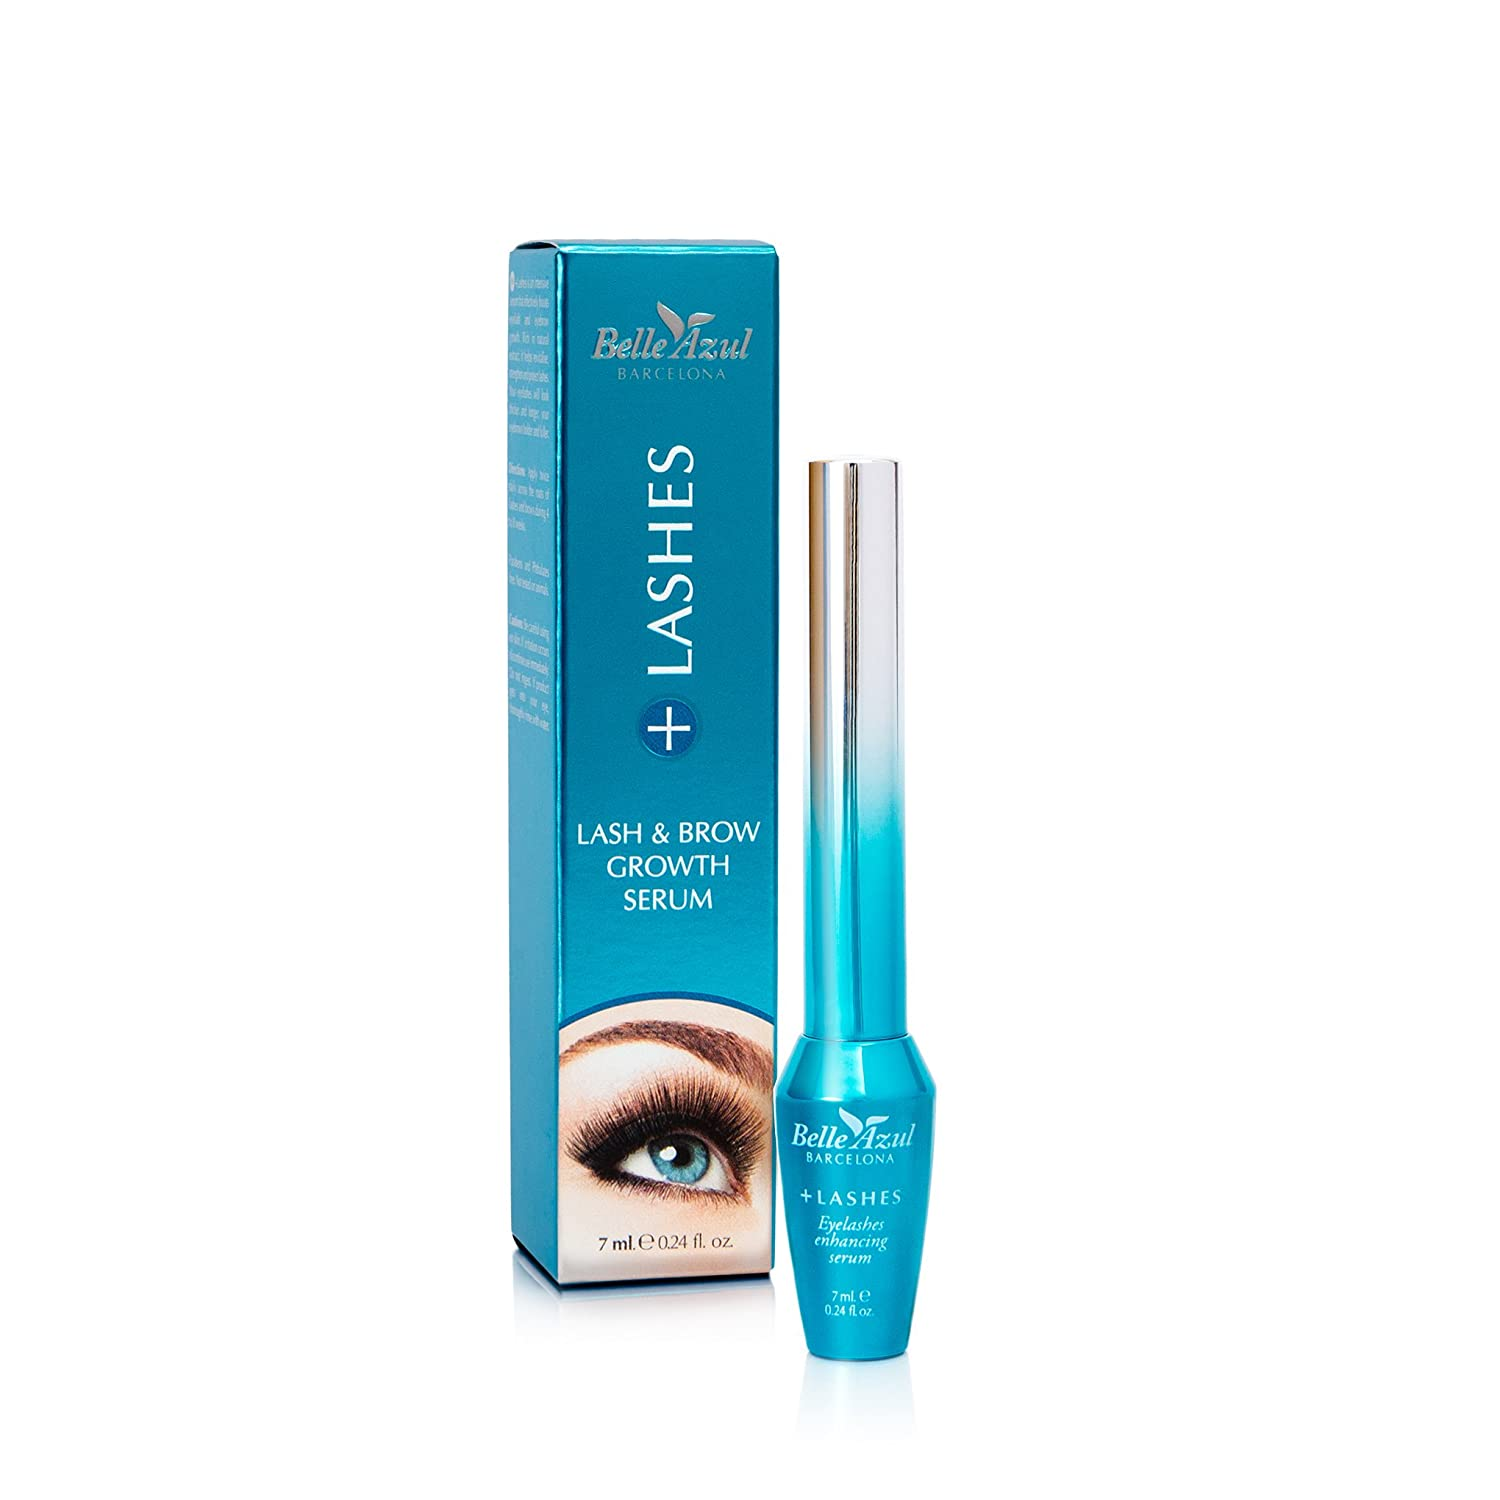 Belle Azul +Lashes Growth Serum (7ml) Longer, Thicker, Fuller Lashes & Enhanced Brows with Castor Oil. Conditioning Treatment that Nourishes & Protects. 7ml / 0.24 fl. oz Simon & Tom